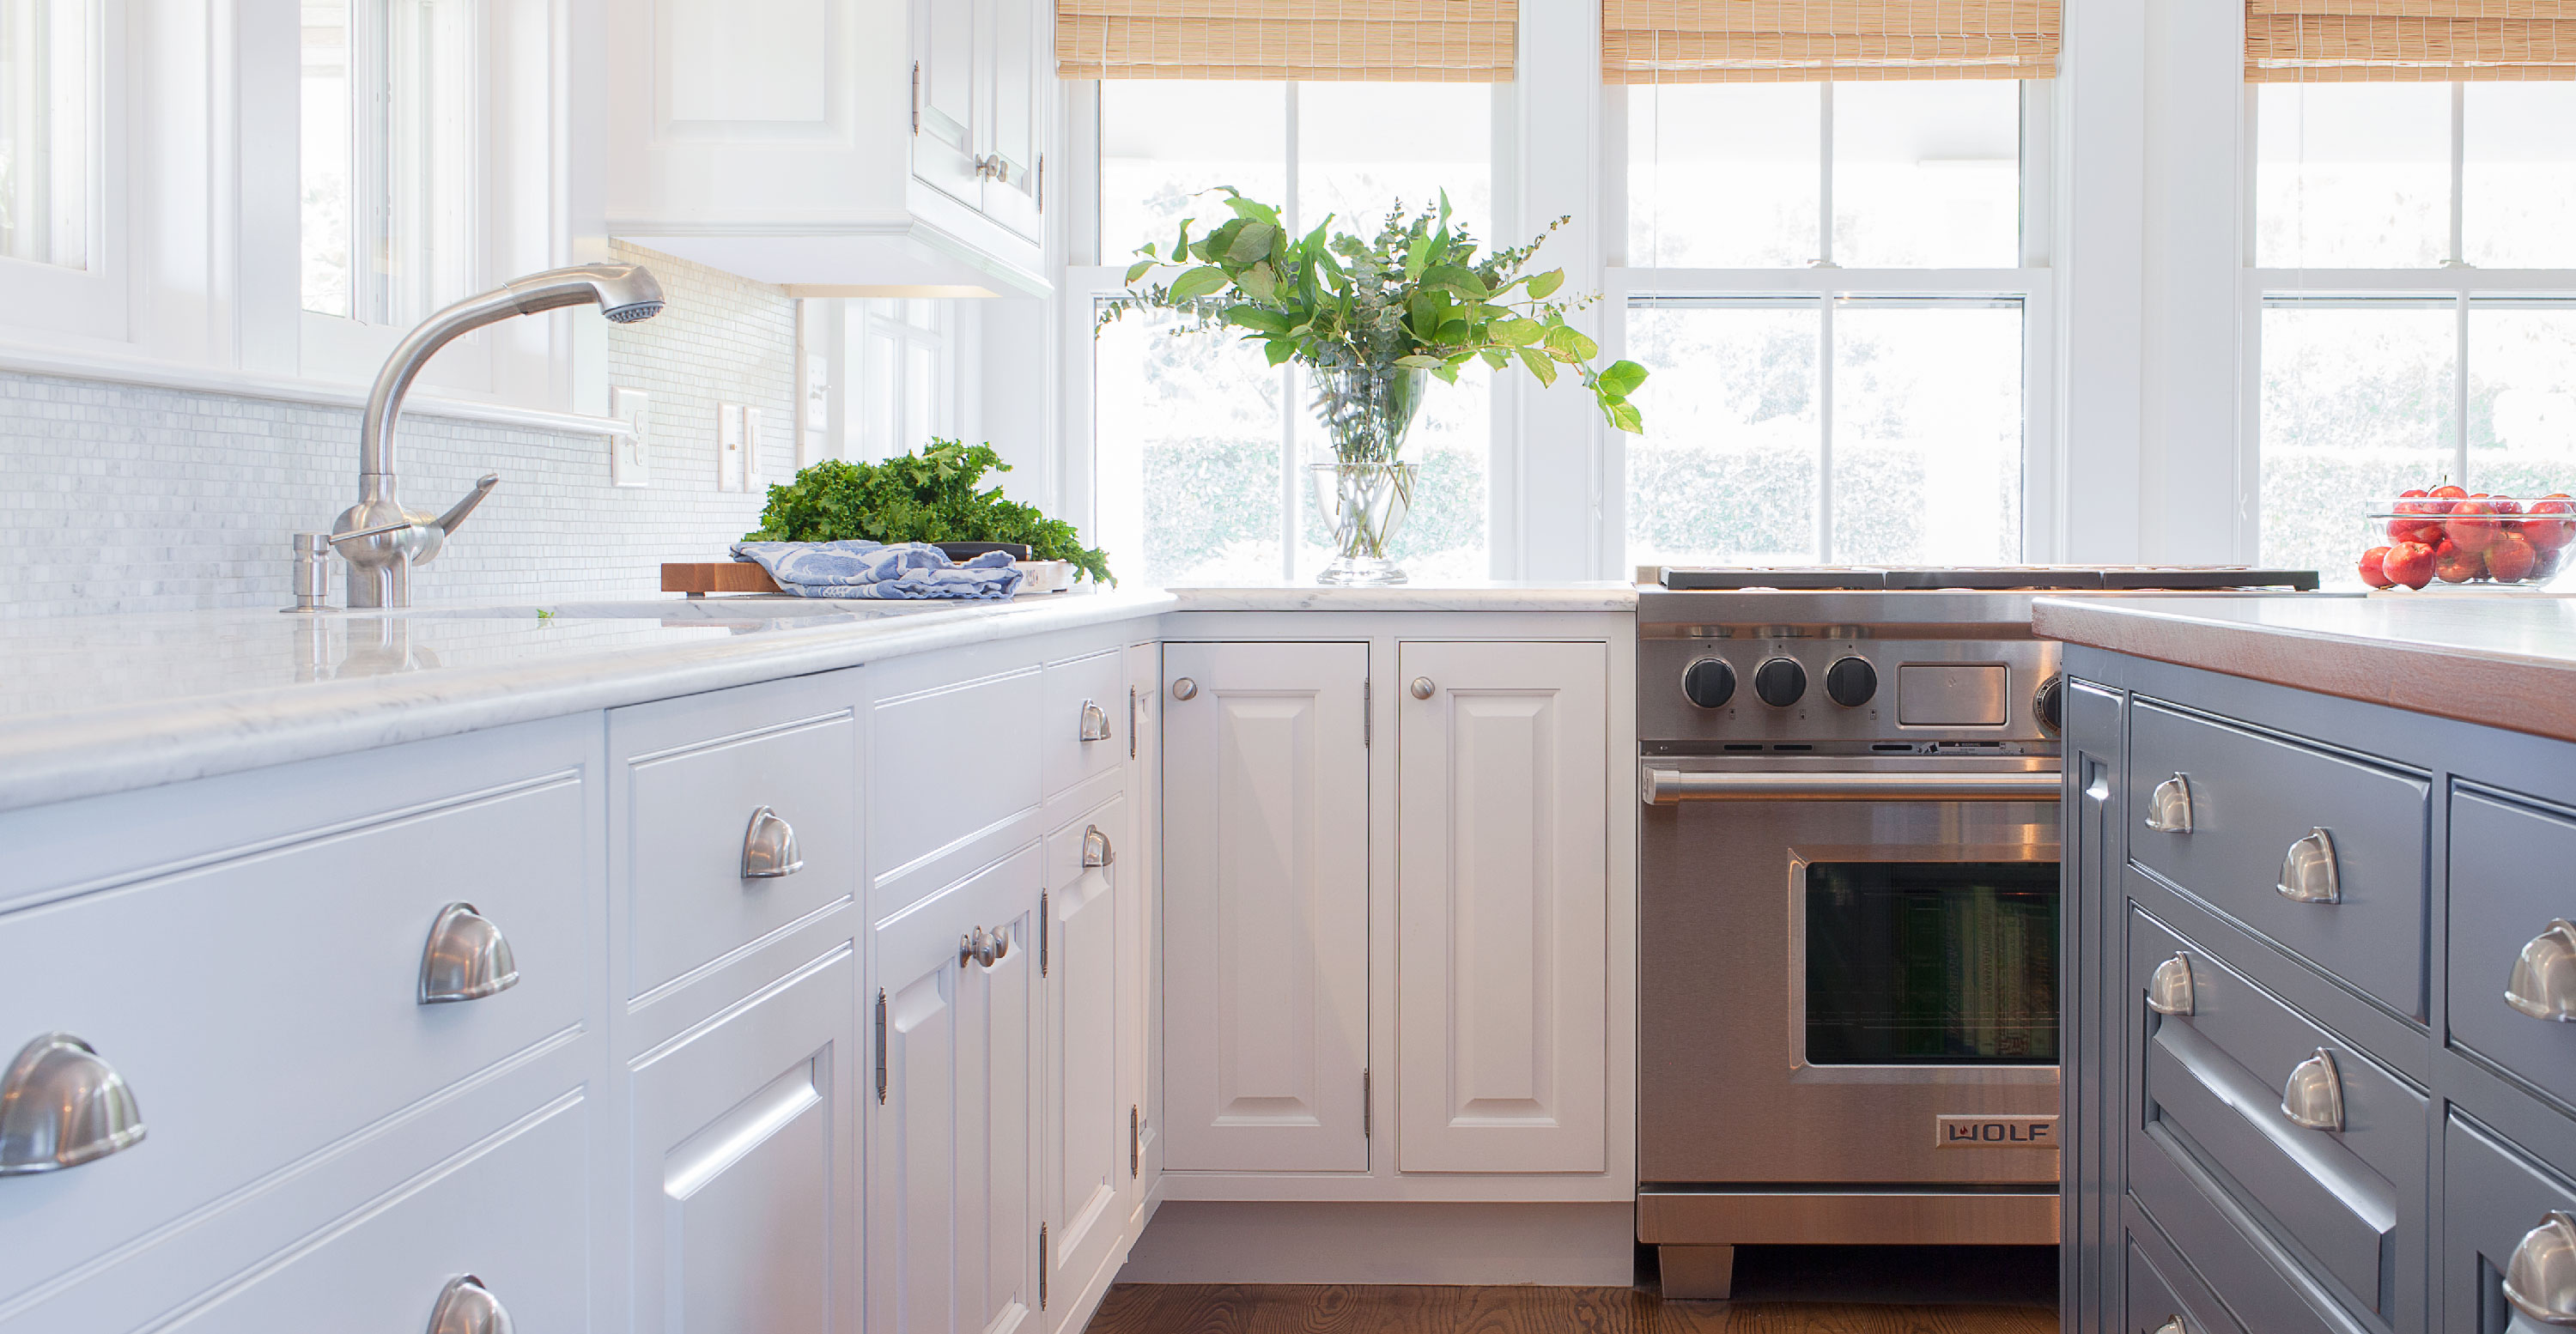 Specials Envision Cabinetry Affordable Kitchen Cabinets AZ